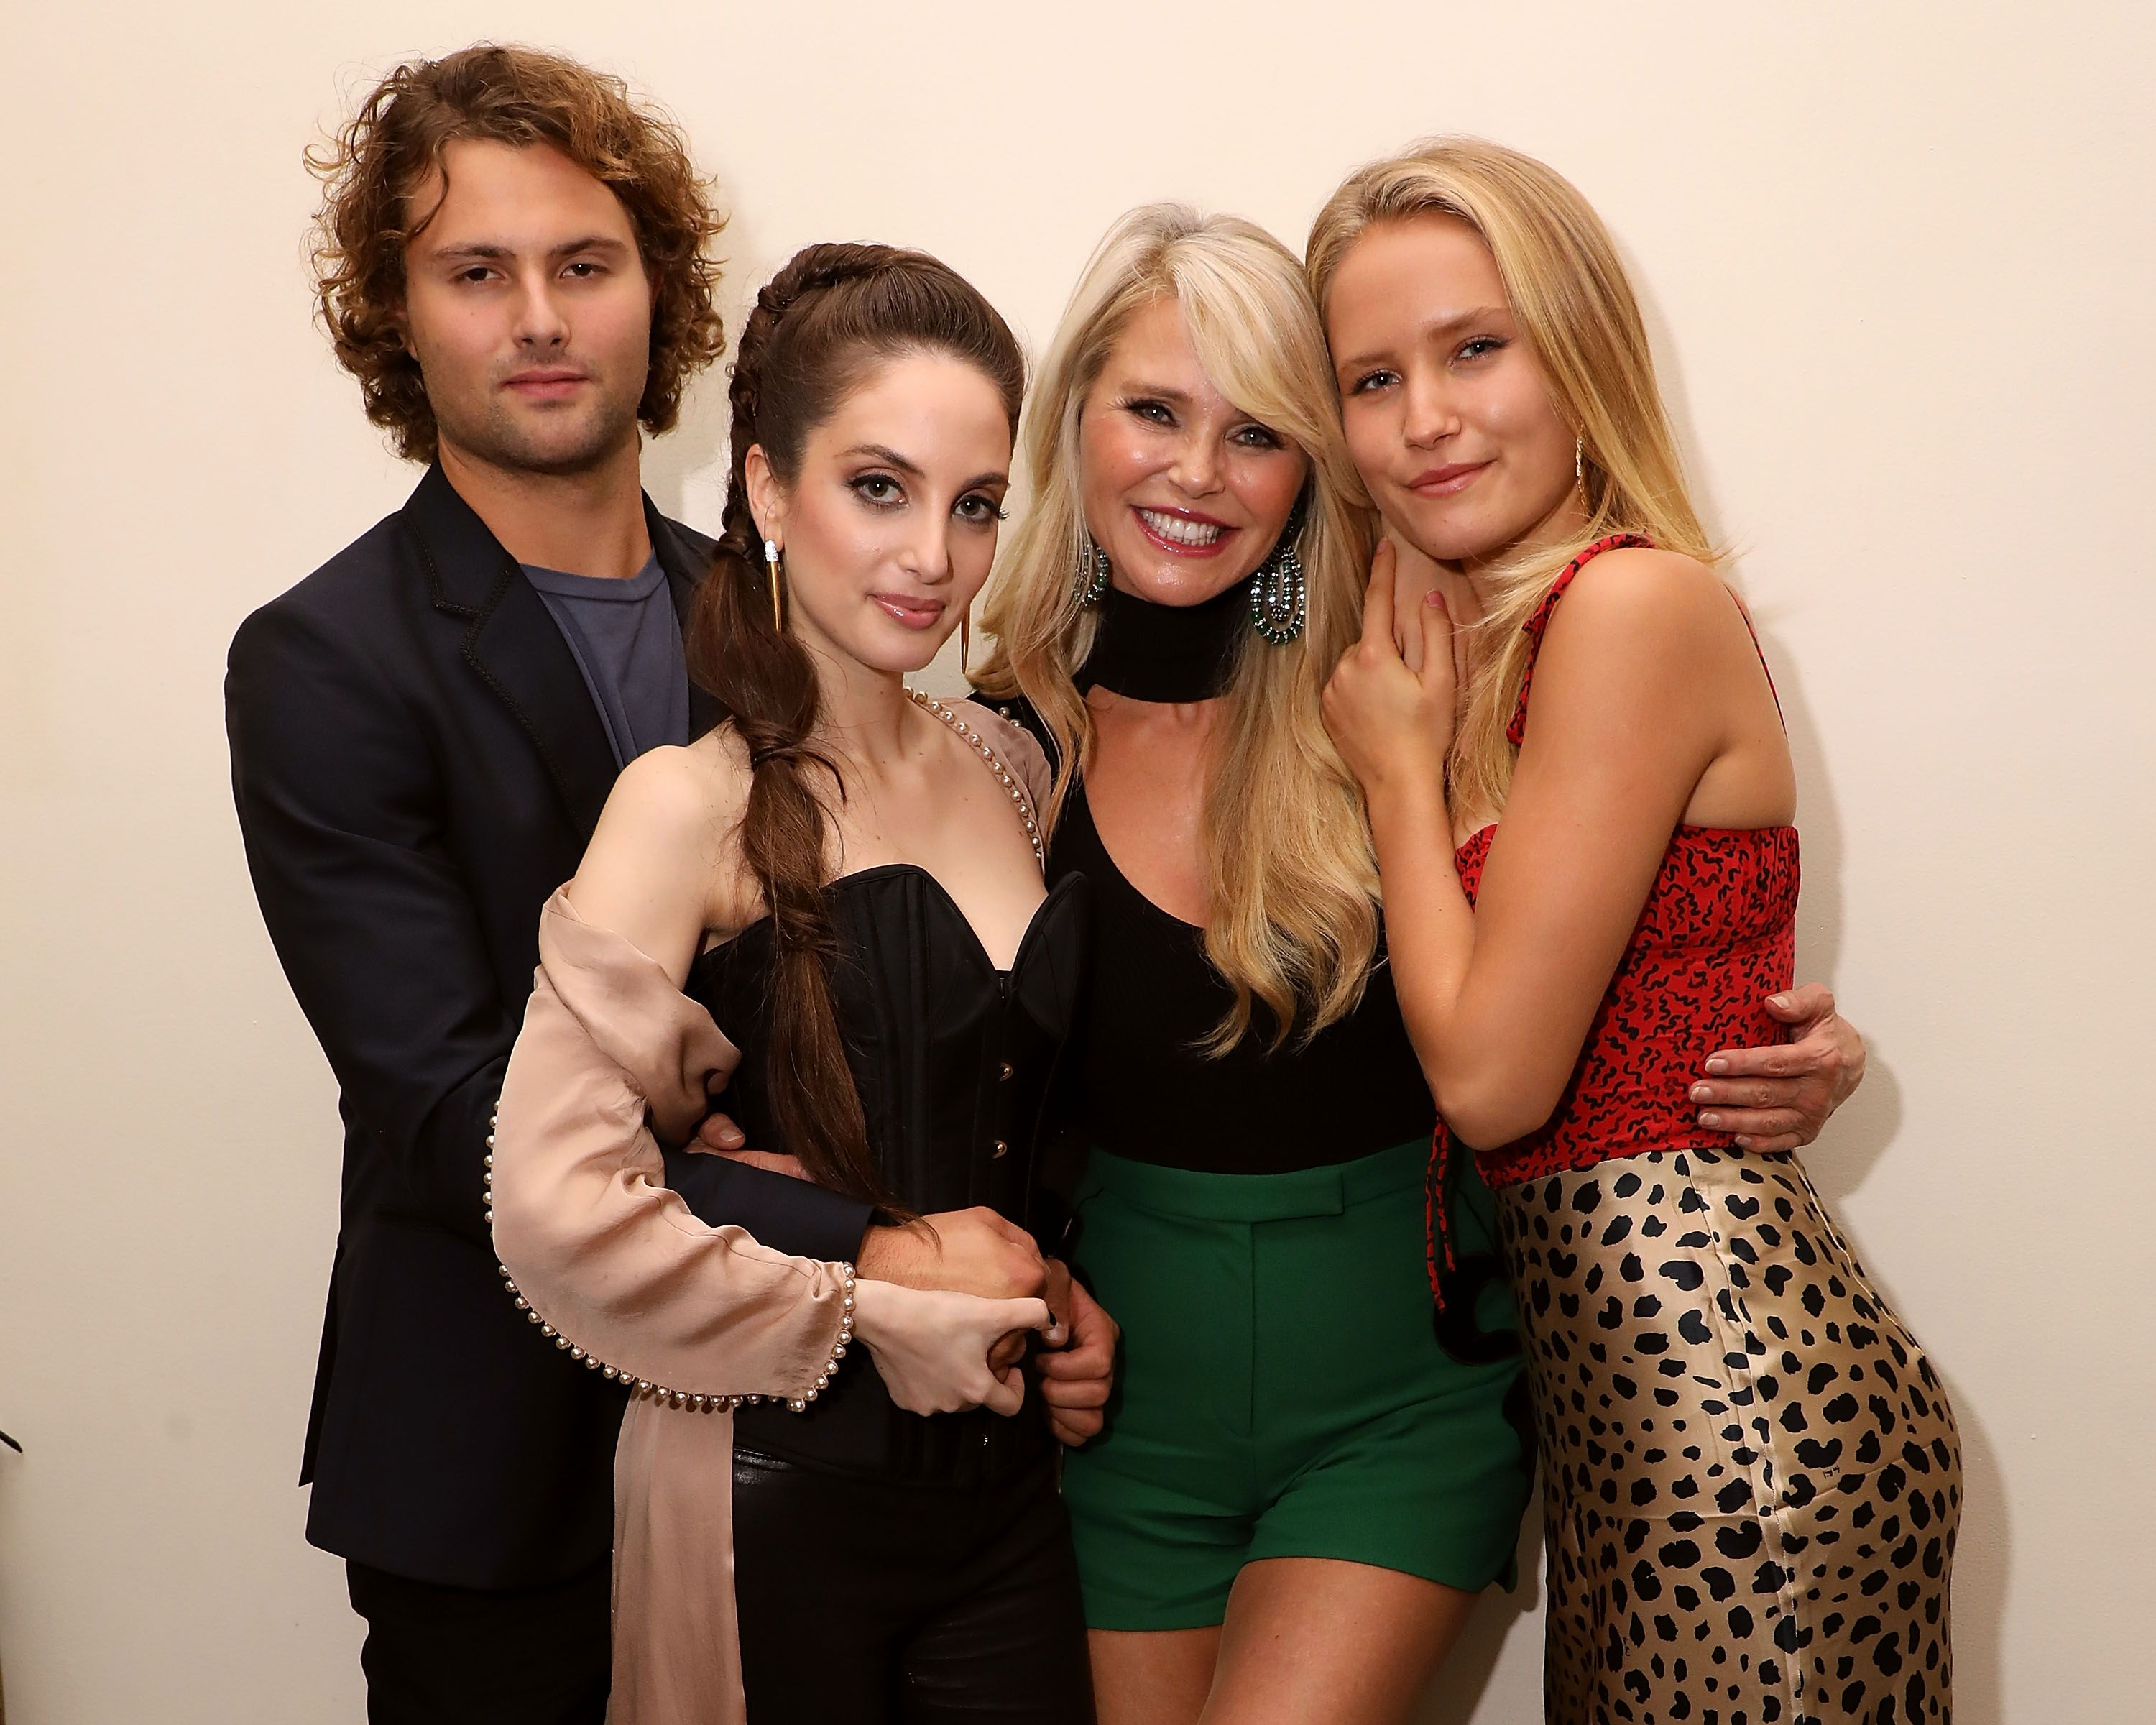 Jack Brinkley-Cook, Alexa Ray Joel, Christie Brinkley, and Sailor Lee Brinkley-Cook celebrate the opening night of Alexa Ray Joel's 2018 residency at Cafe Carlyle on September 25, 2018 in New York City. | Source: Getty Images